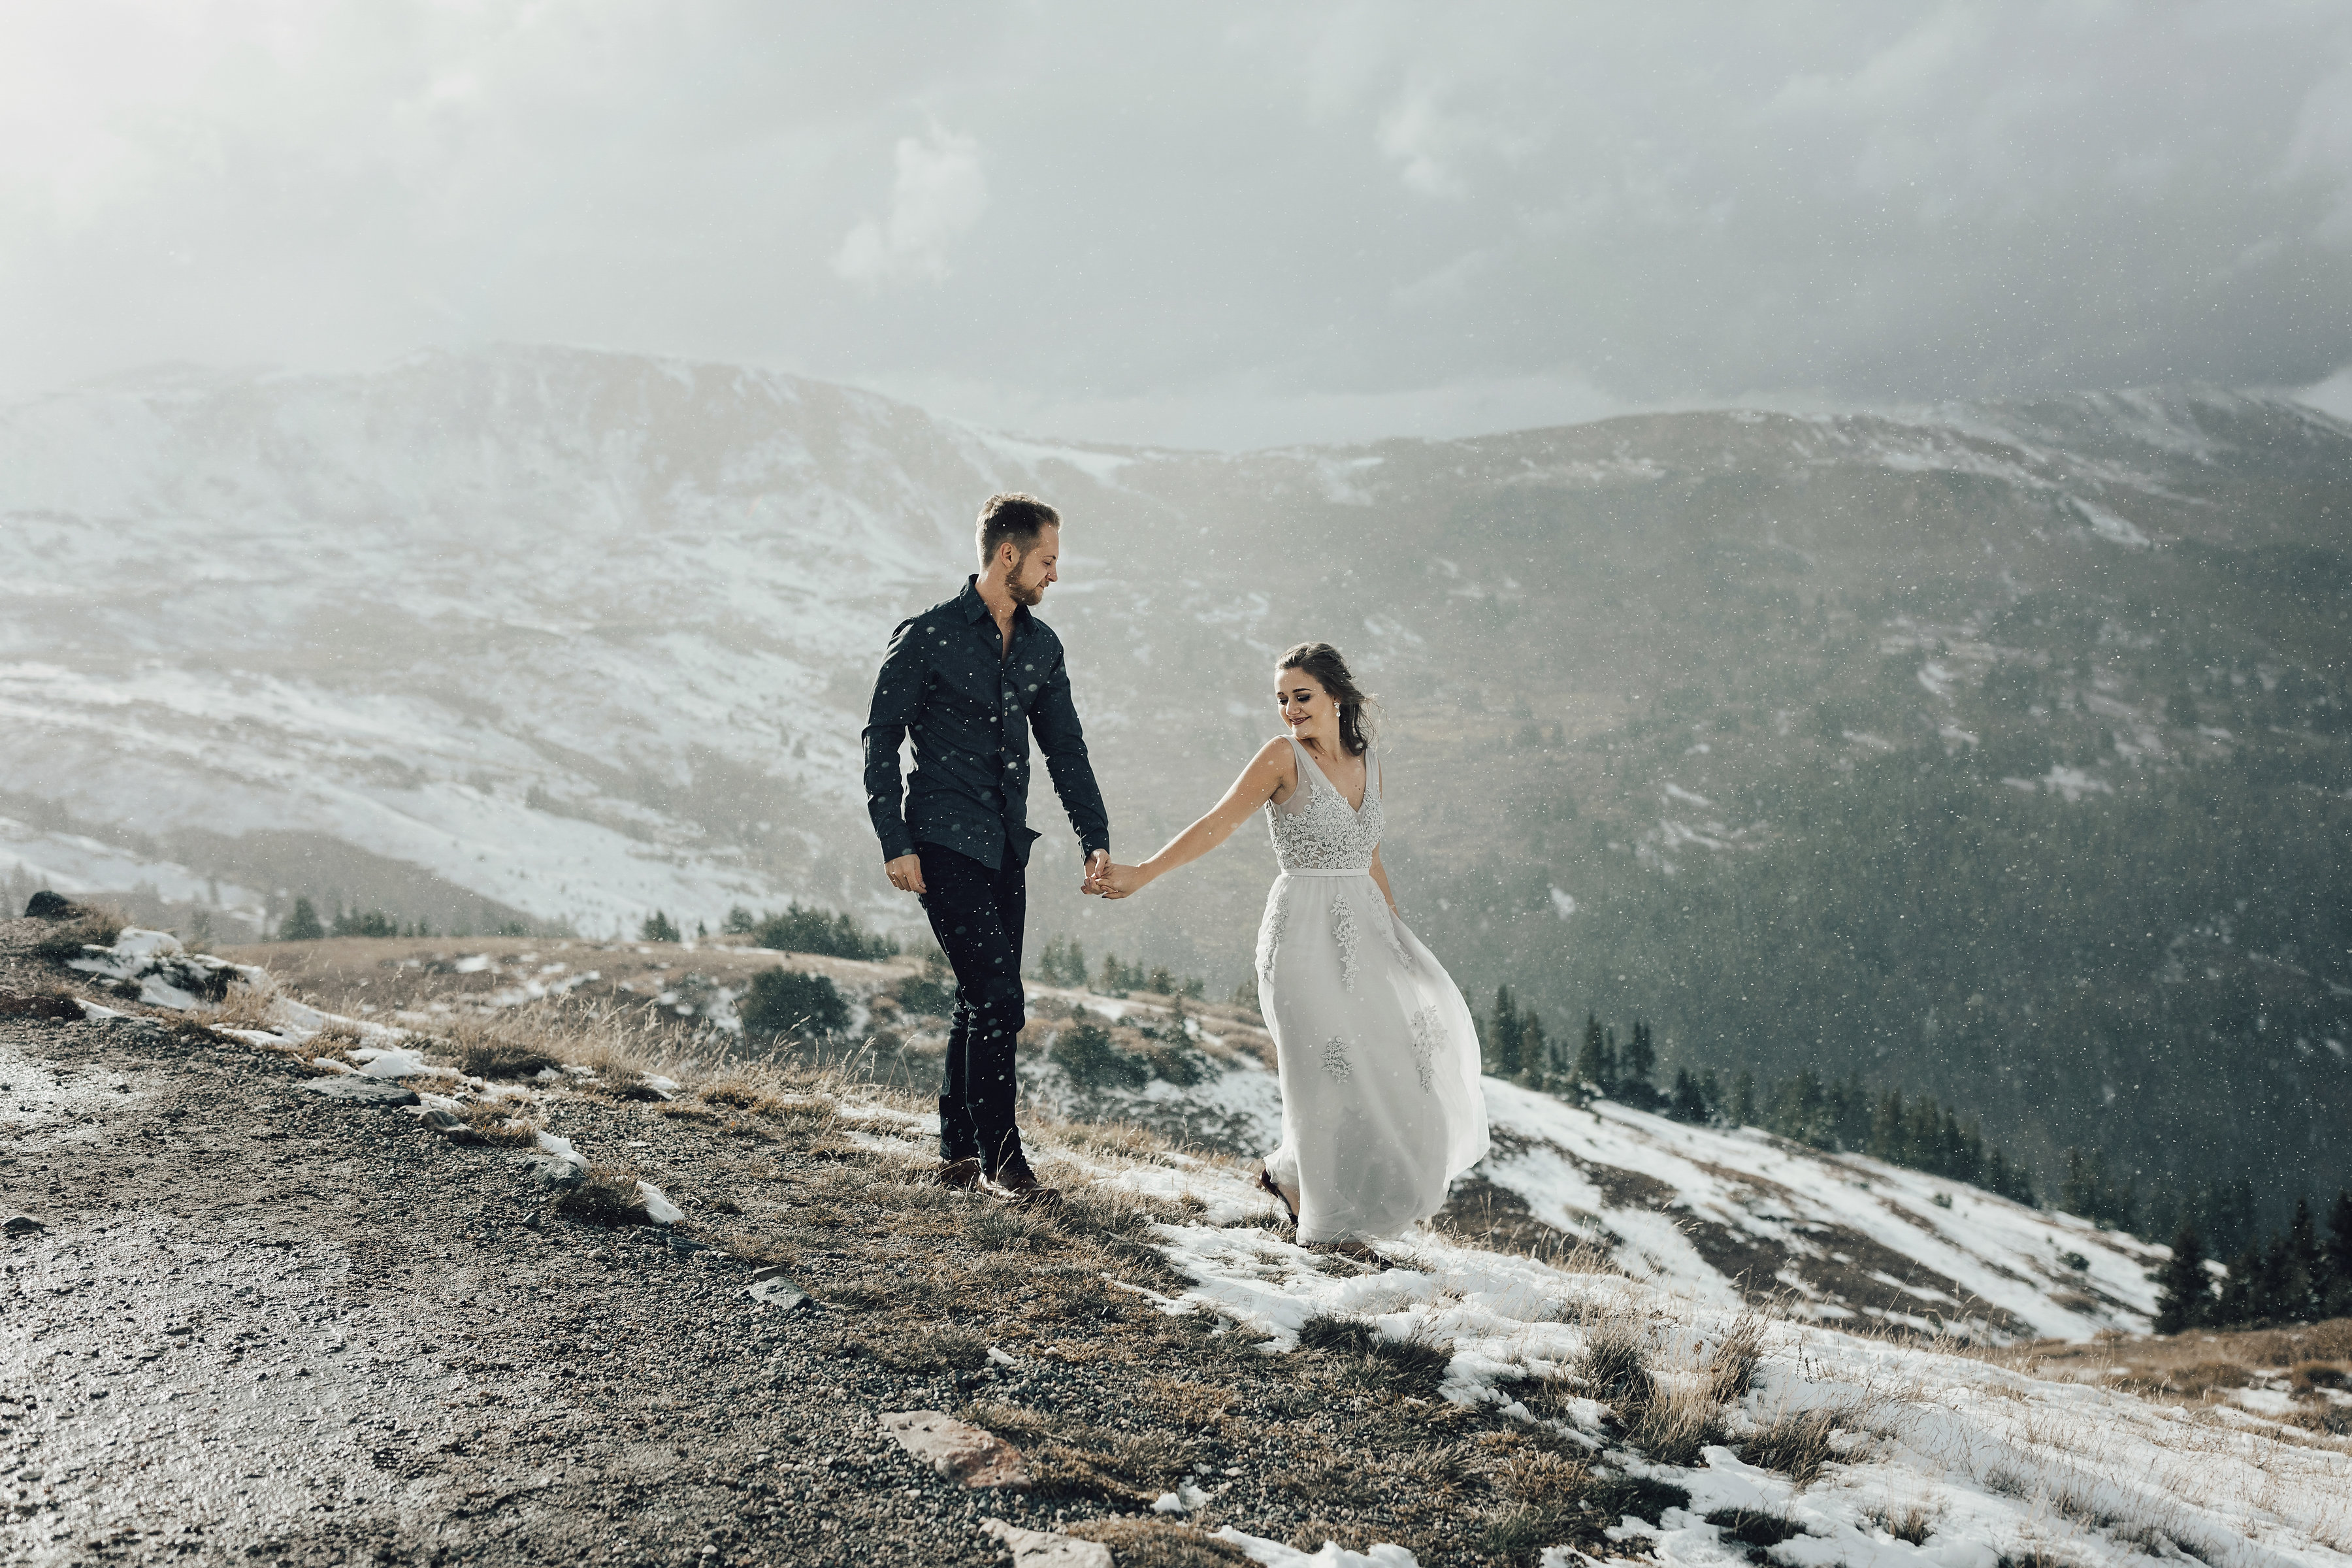 What Constitutes an Elopement?